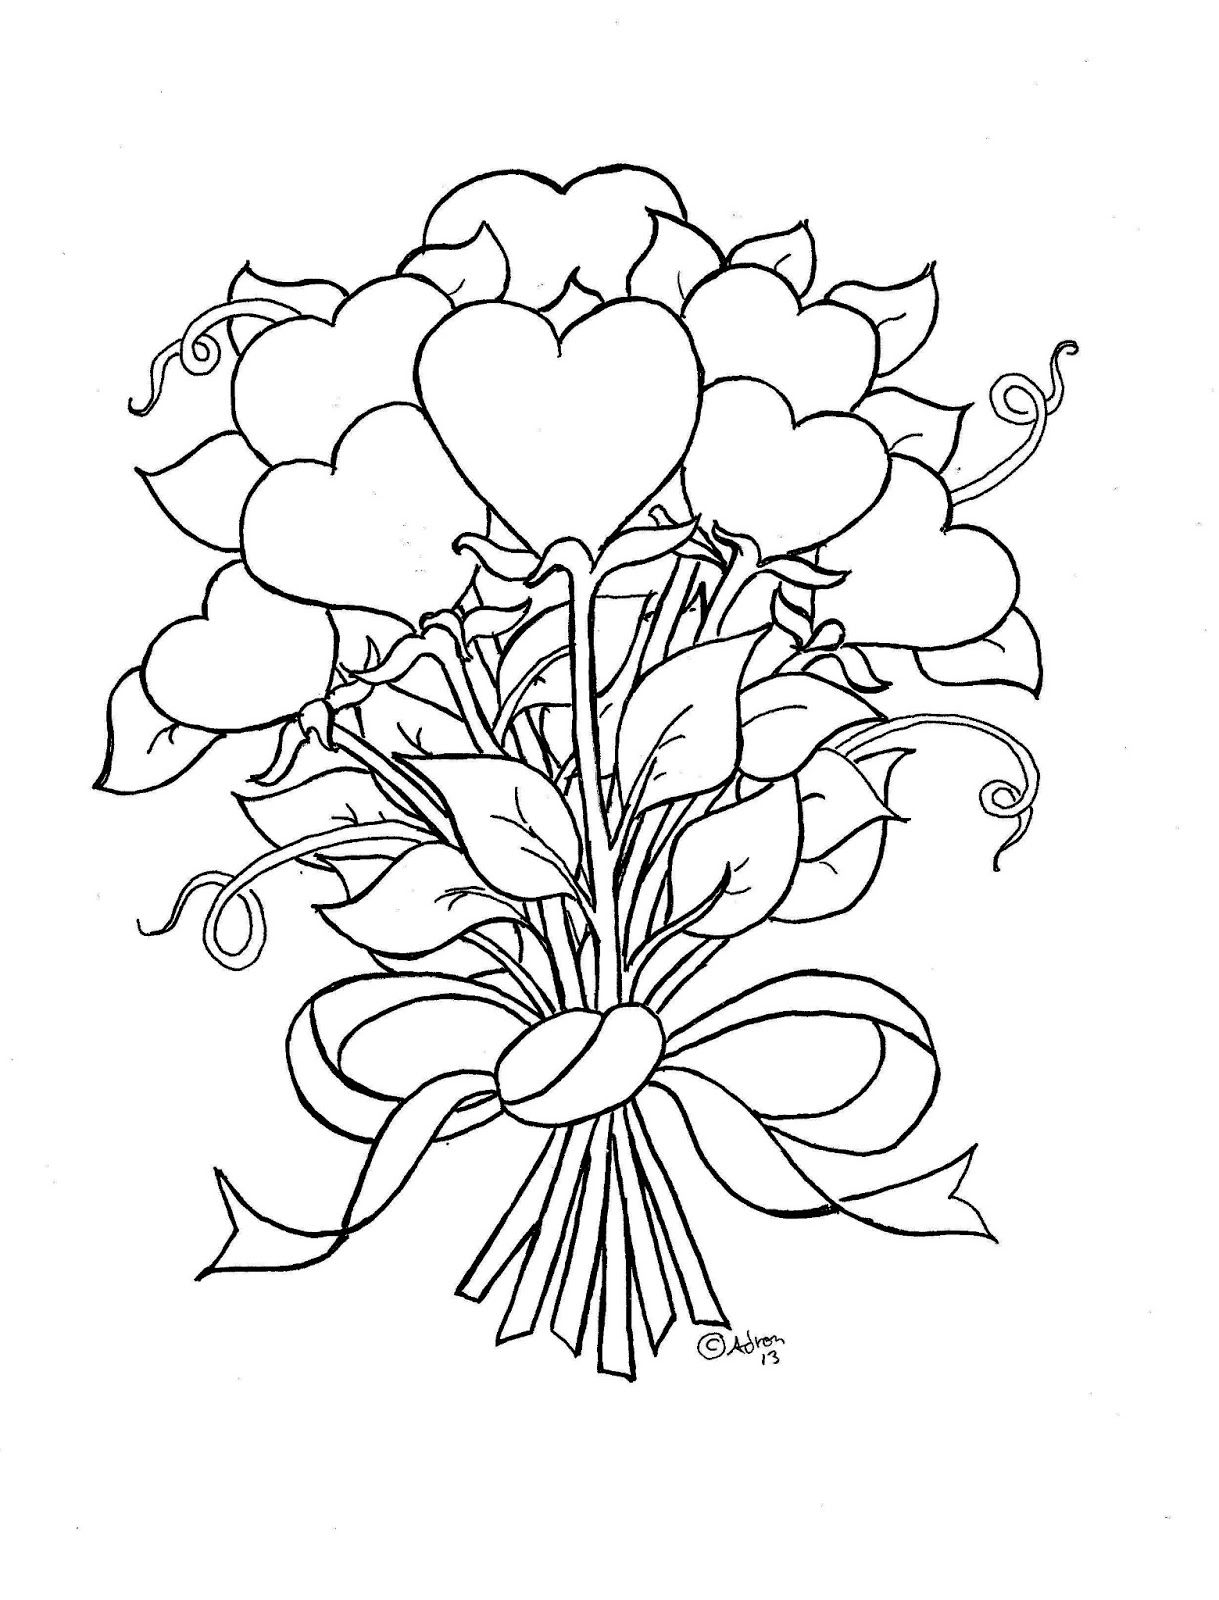 print coloring pages hearts : Flower Hearts Kid S Print And Color Page Coloring Suggestions At The Blog Http